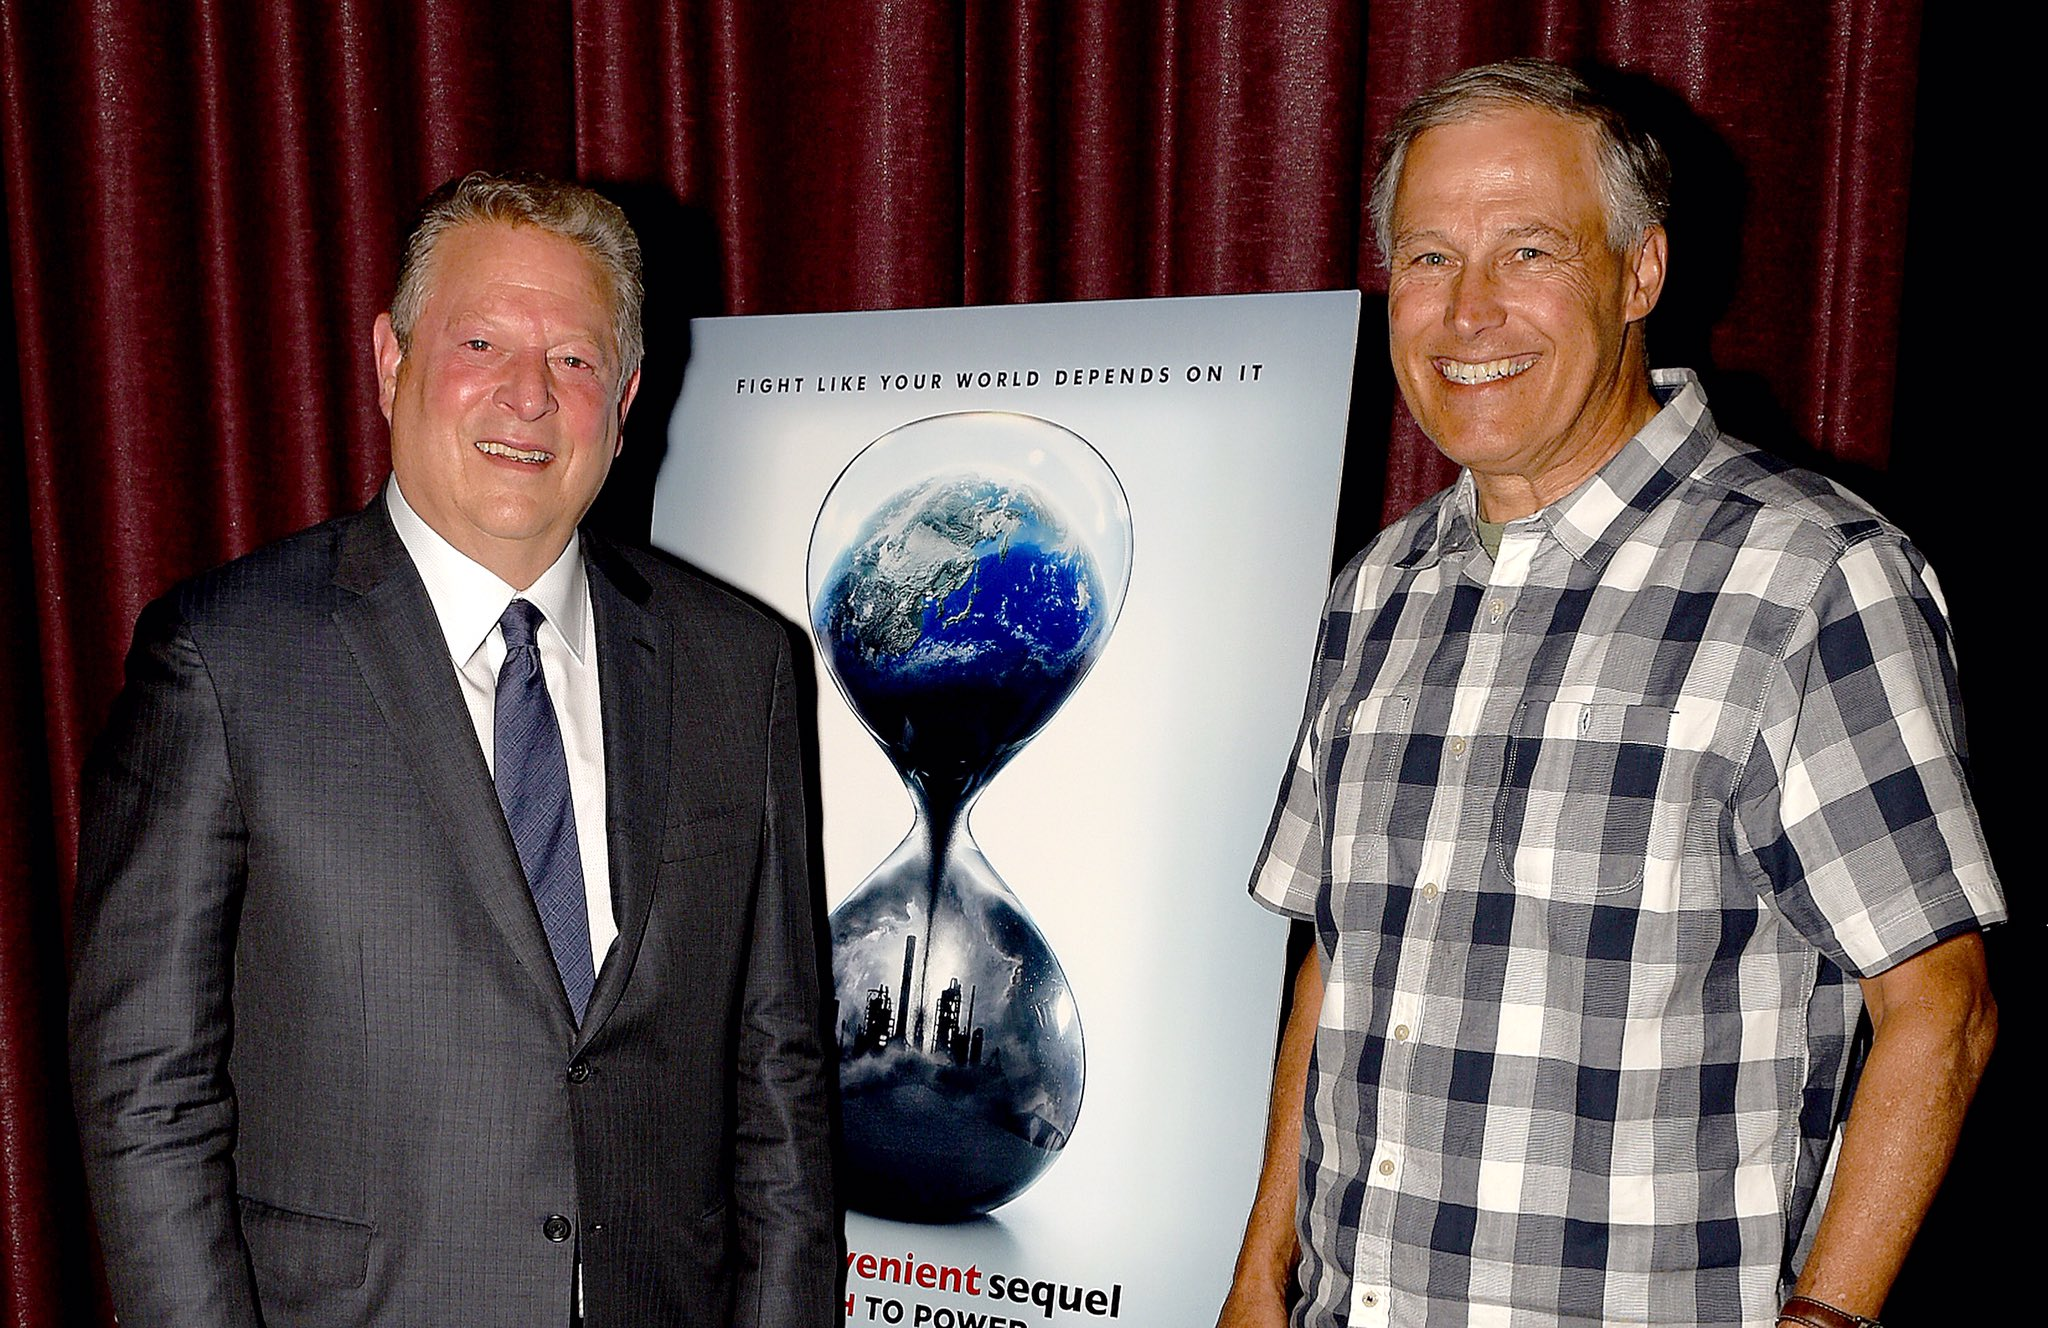 RT @algore: Always a pleasure to see my good friend @GovInslee. Thanks for coming to see @aitruthfilm tonight. #BeInconvenient https://t.co…